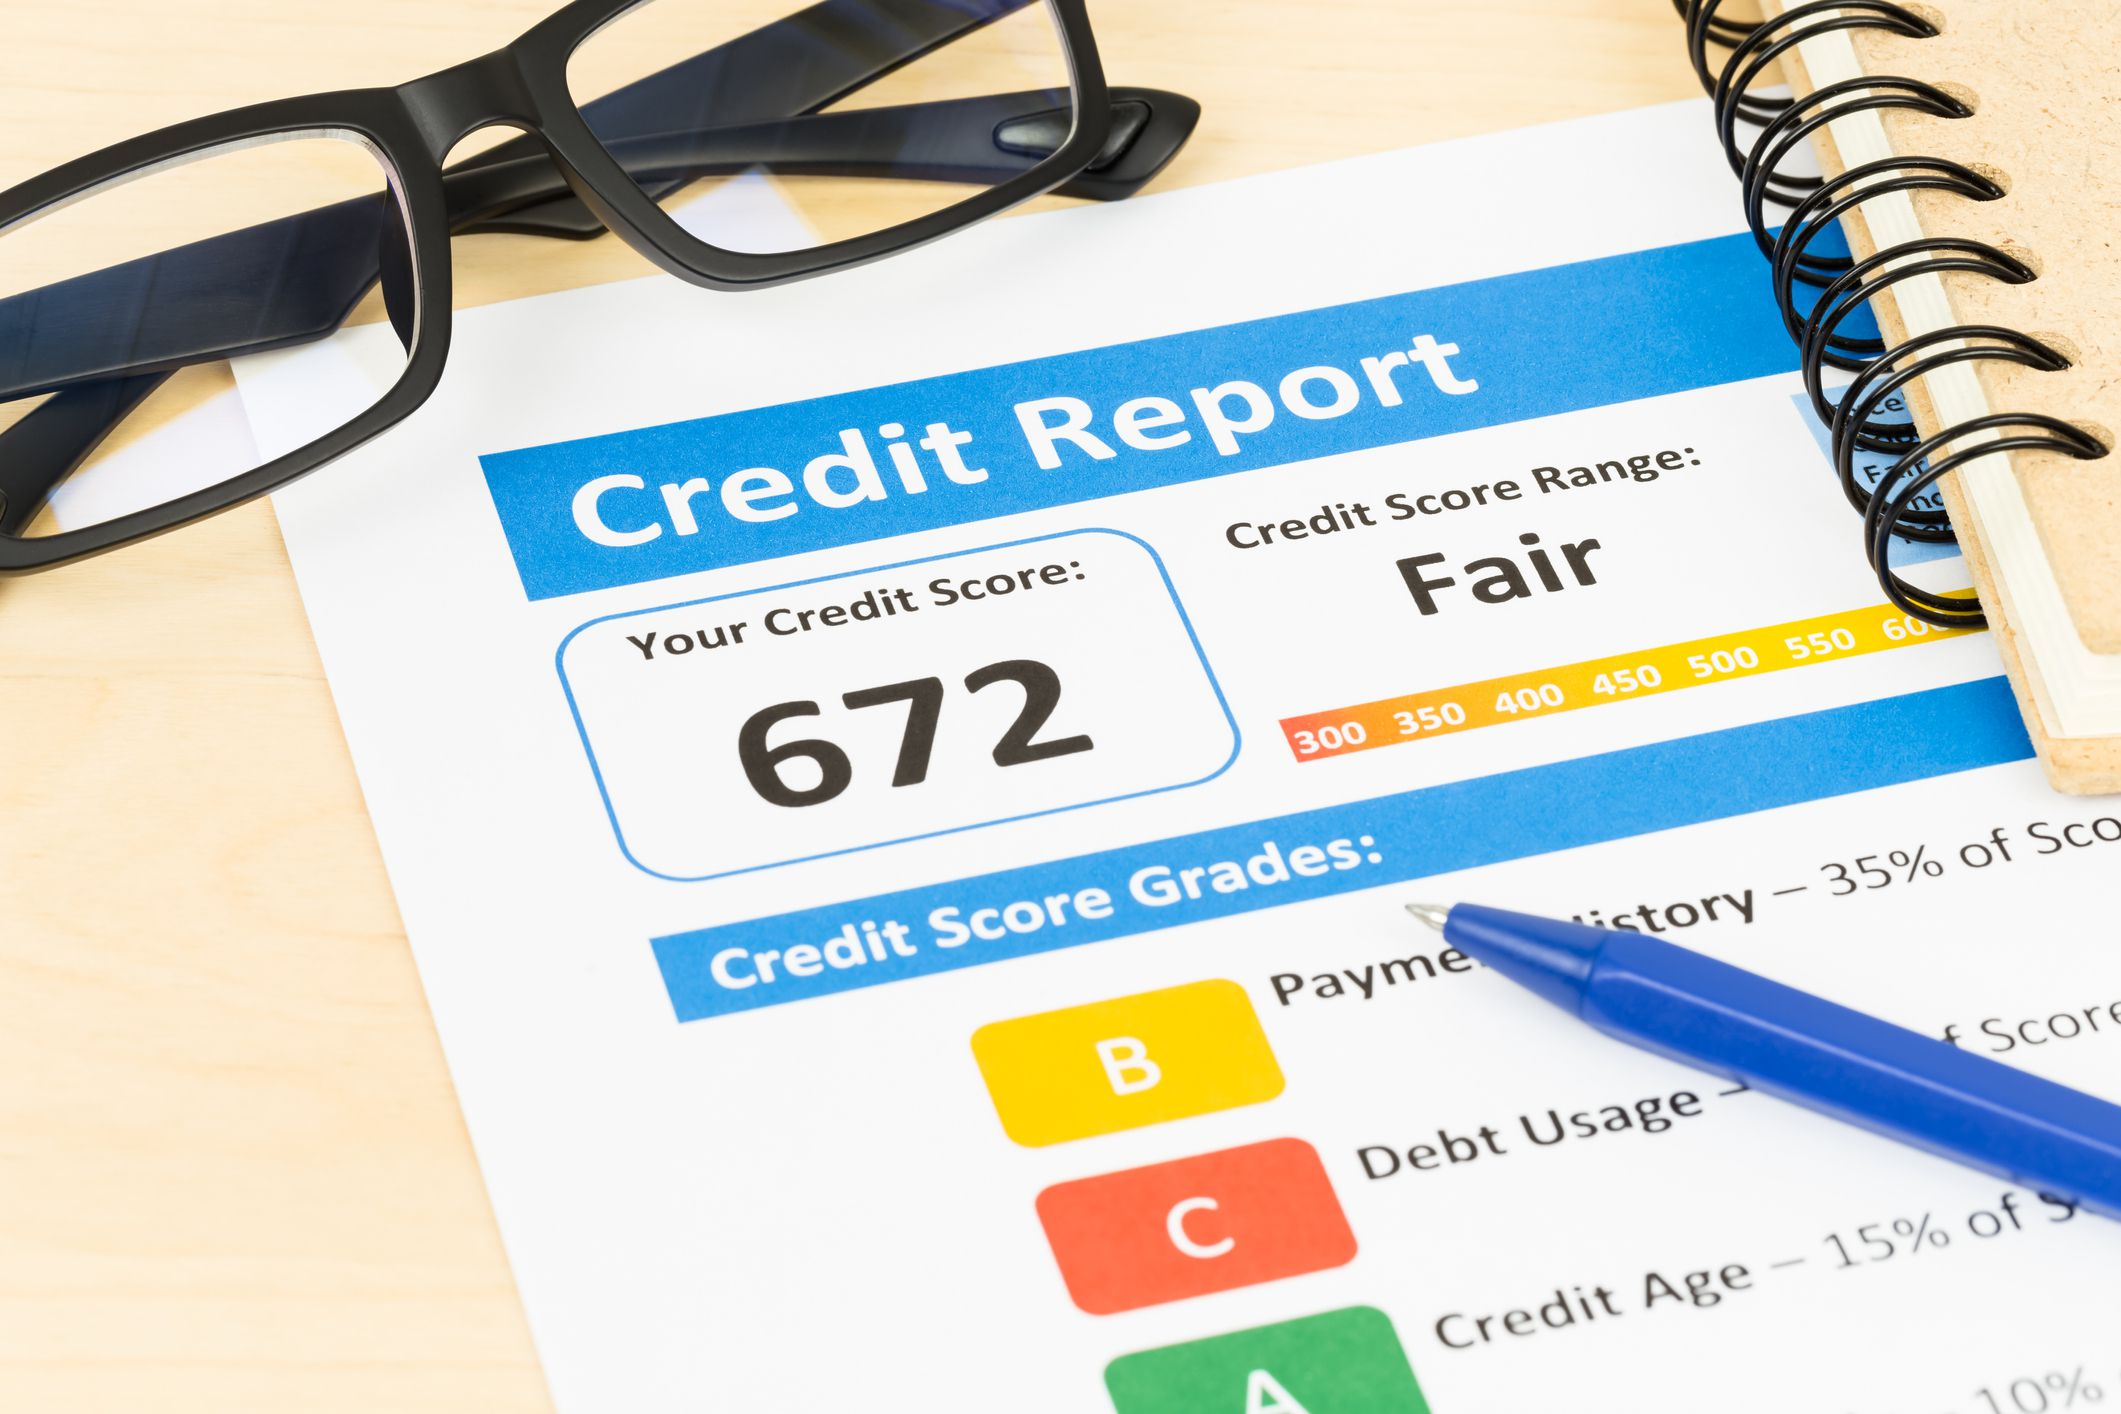 Personal Loans 600 Credit Score >> Personal Loans For Fair Credit 580 To 669 Credit Scores